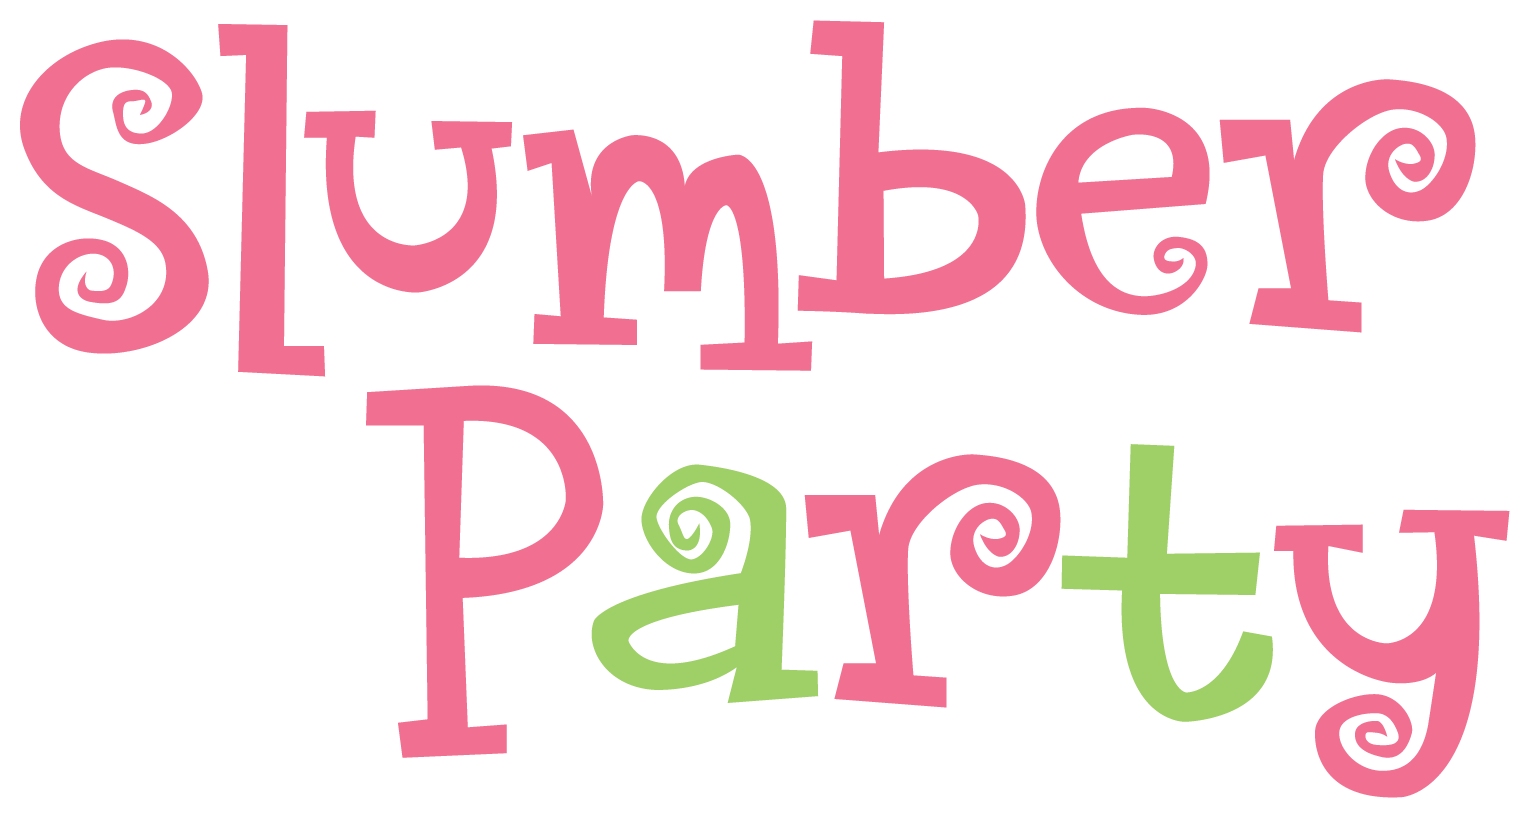 Words u203f✿u2040○ · Pajama PartySlumber PlusPng.com  - Slumber Party PNG HD